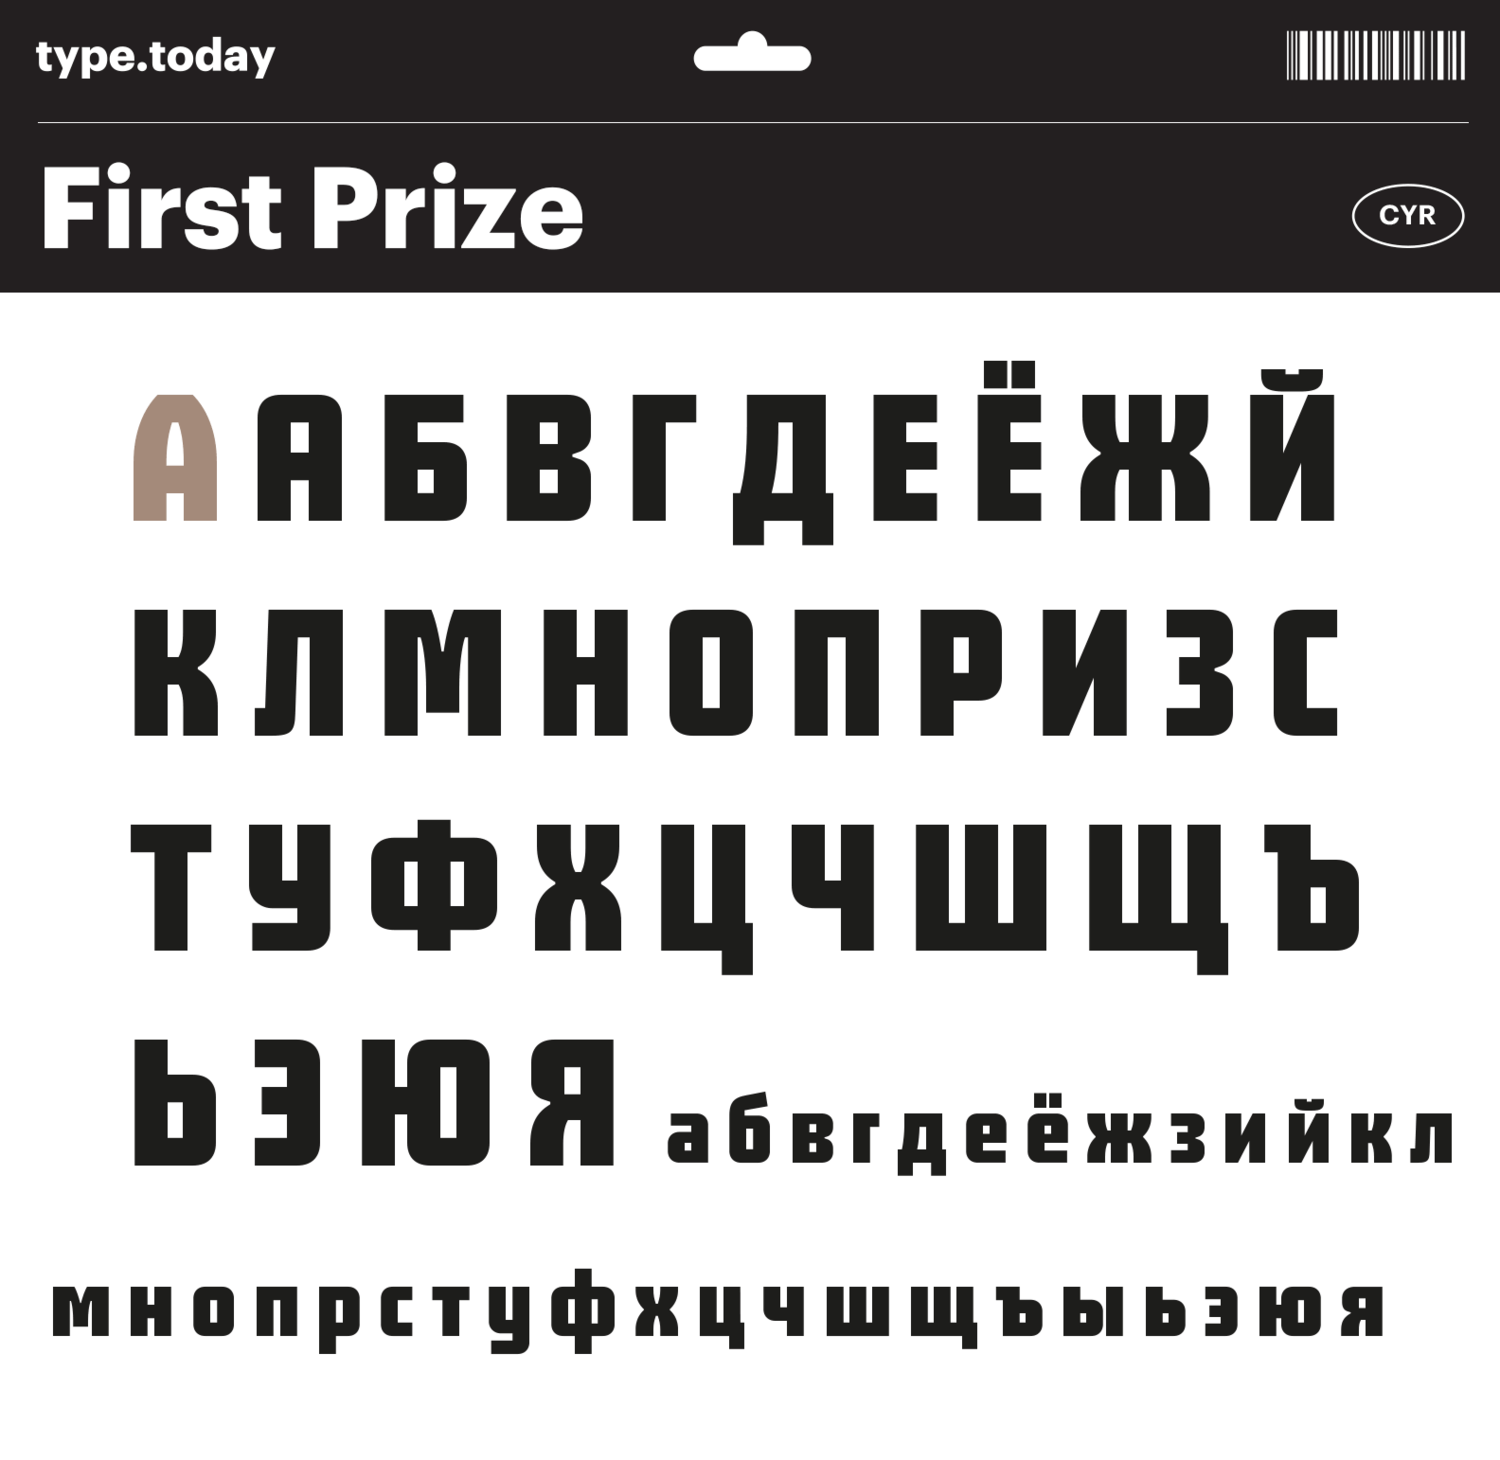 TT_FirstPrize_AlphabetCyr